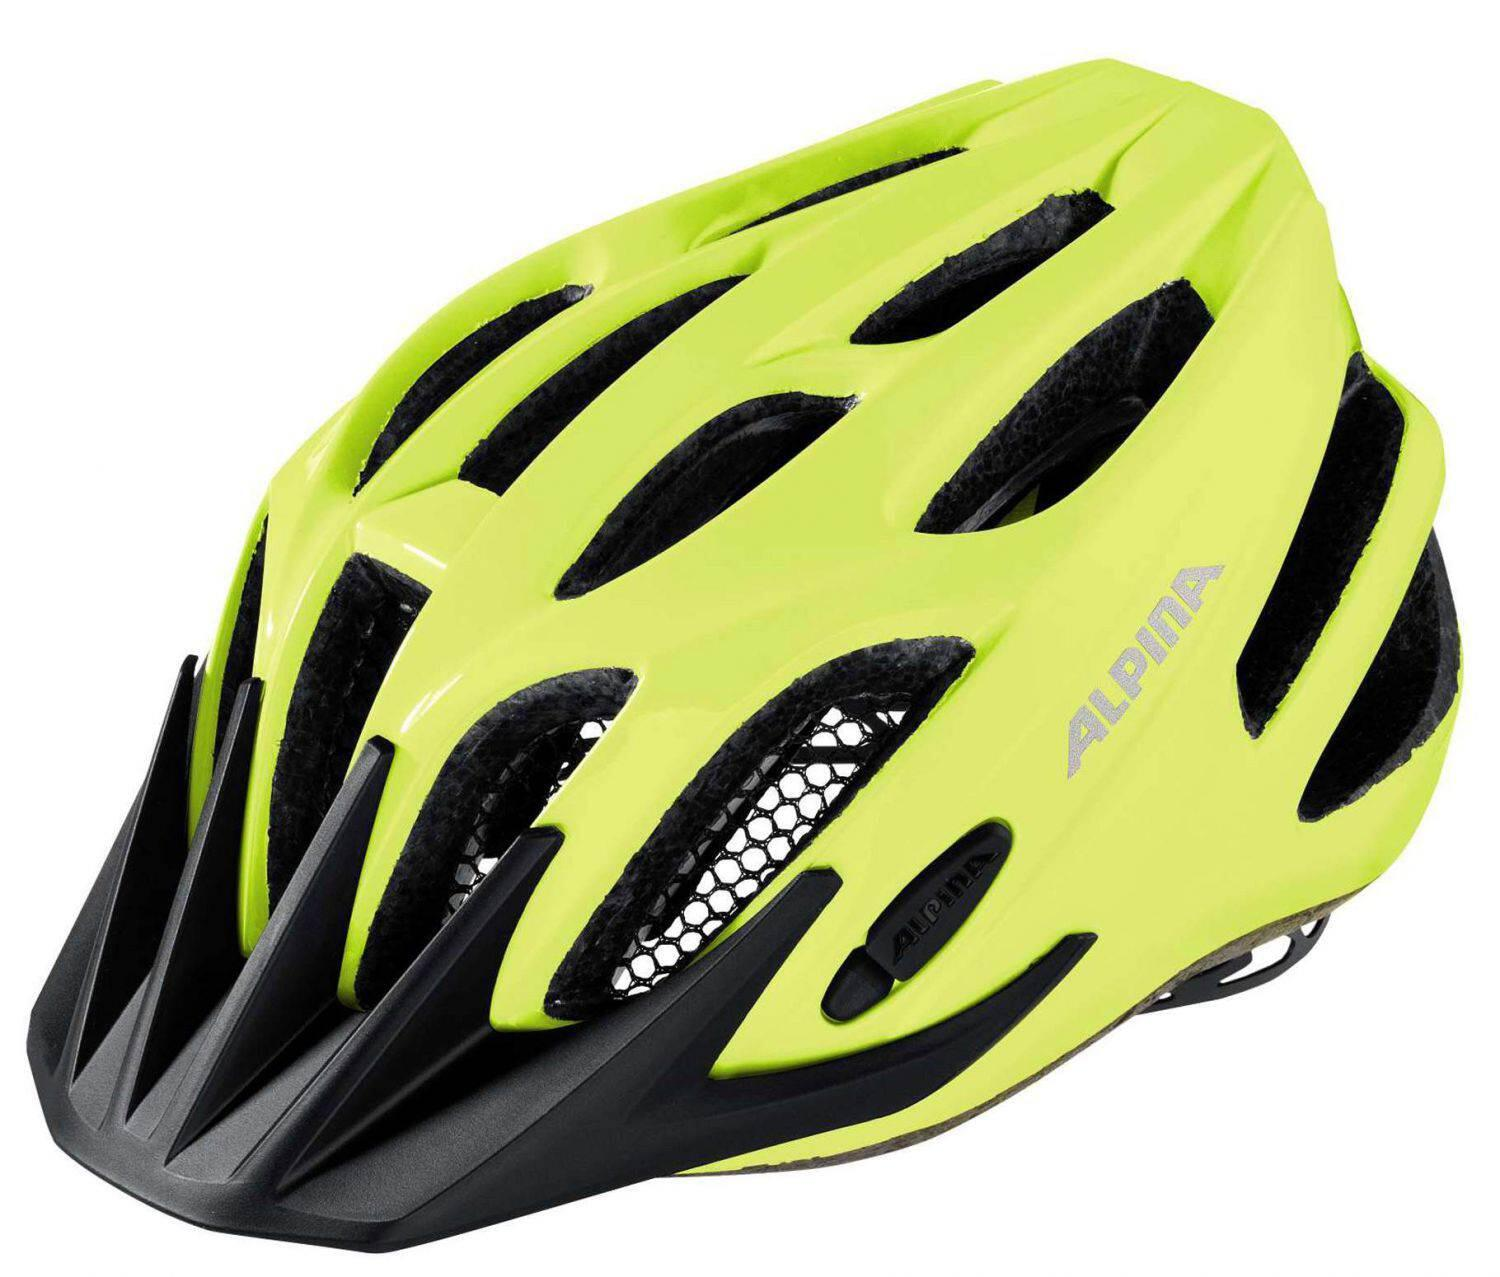 Fürfahrräder - Alpina Firebird Junior 2.0 Flash Radhelm (Größe 50 55 cm, 40 be visible reflective) - Onlineshop